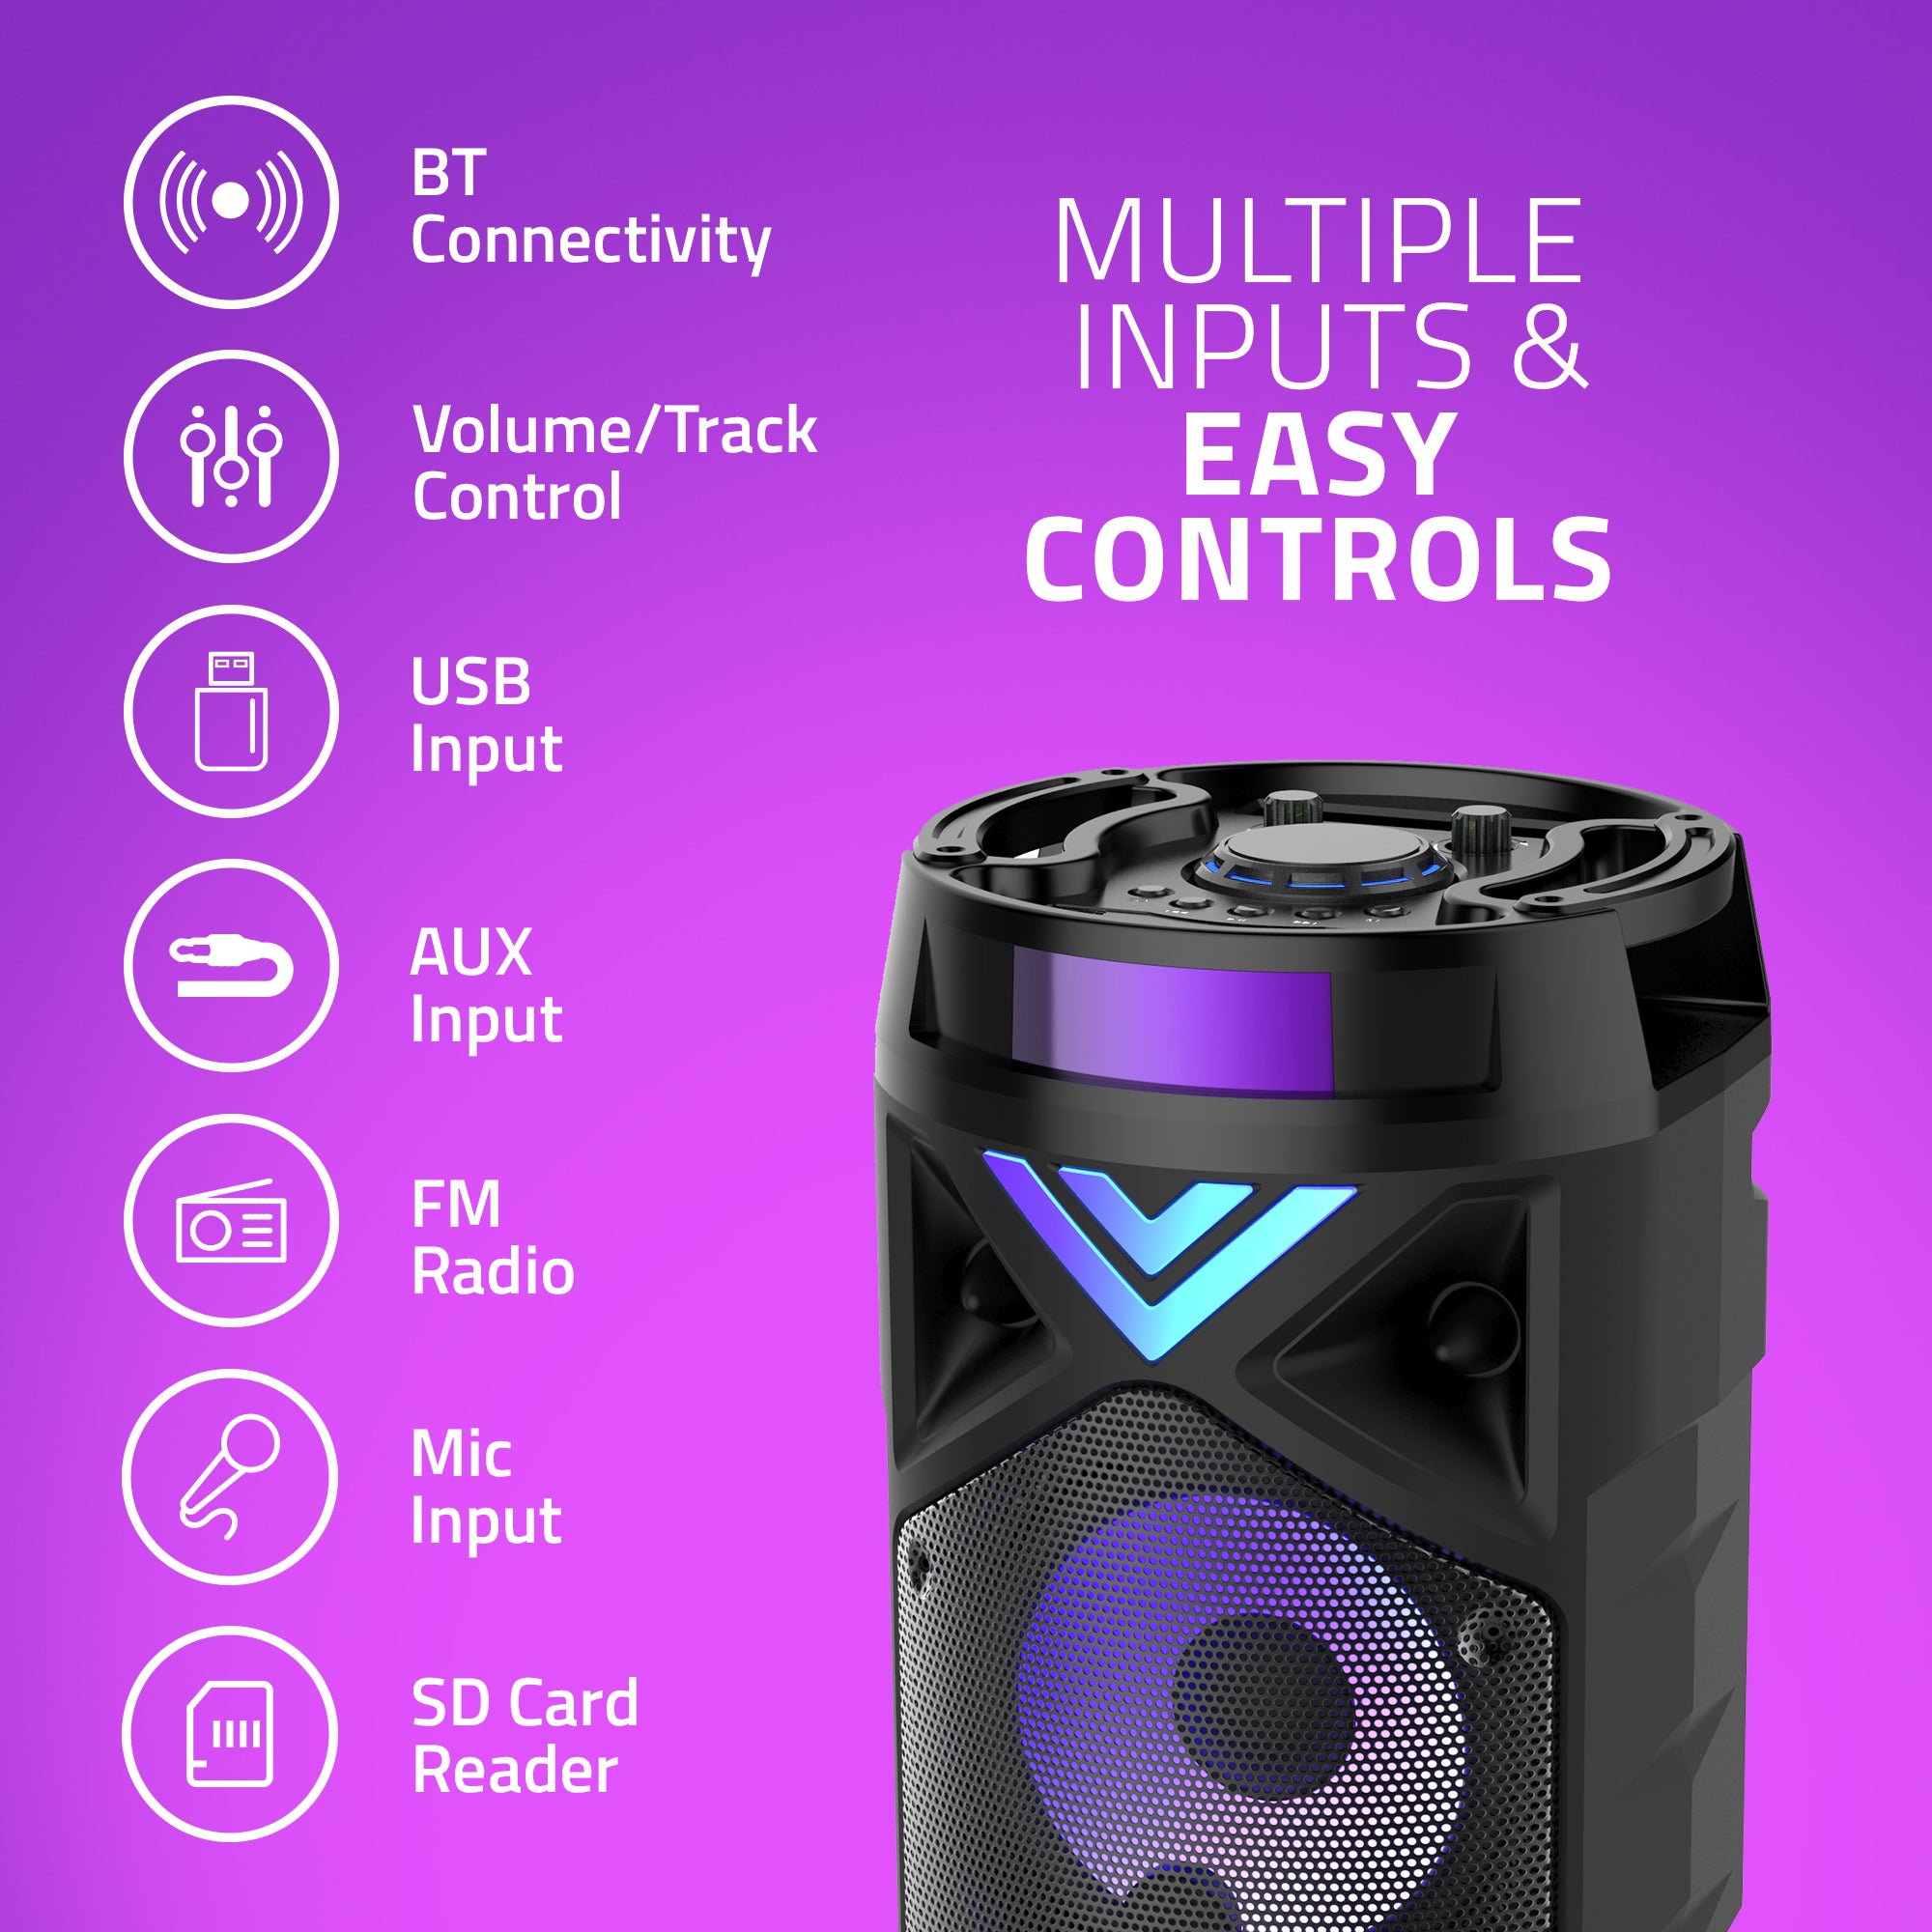 MS304 Artis Bluetooth Party Speaker with Multiple Inputs & Easy Controls